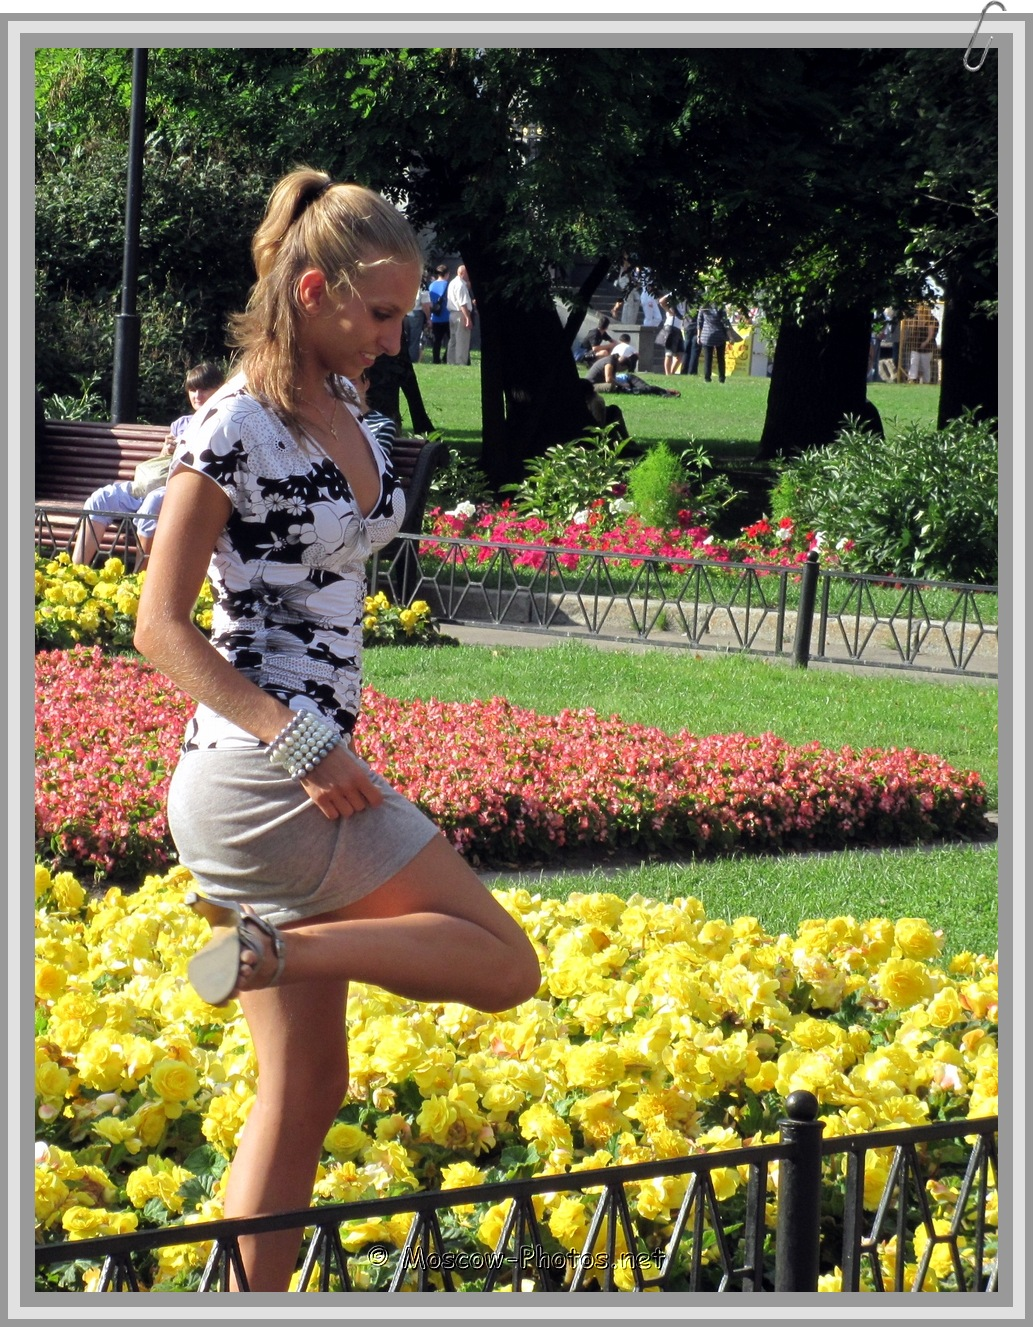 Russian Girl and Flowers